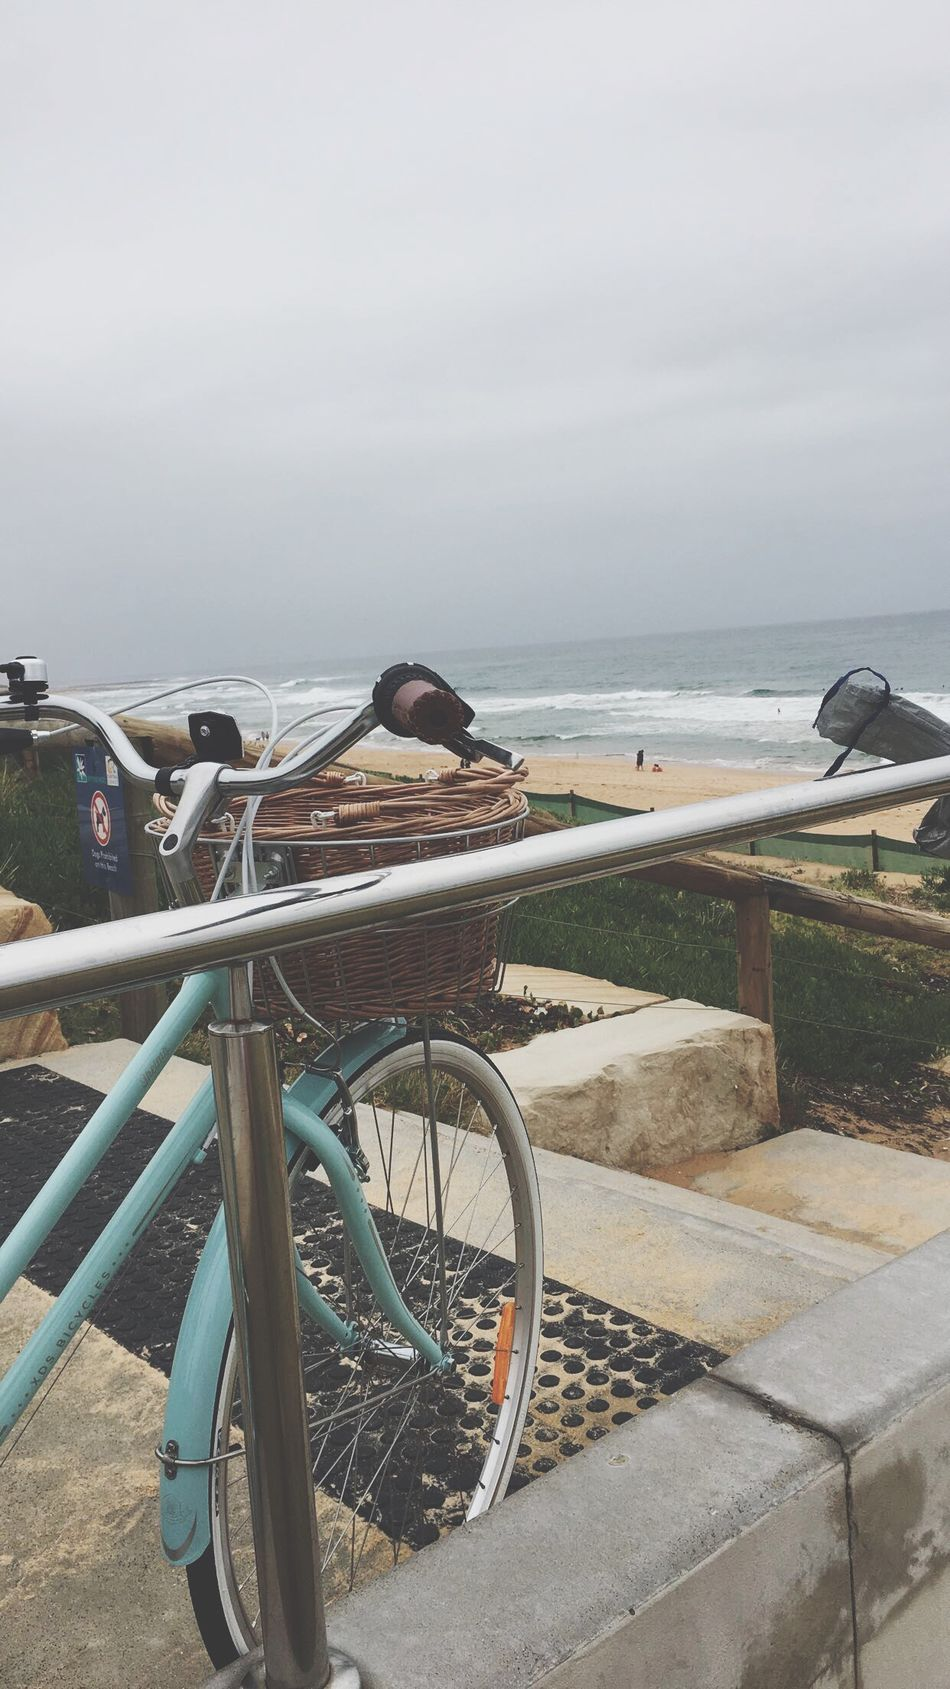 Horizon Over Water Sea Bicycle Beach Water Mode Of Transport Lifestyles Nature Animal Themes Sky Transportation Sand Cloud - Sky Beautiful Beauty In Nature Outdoors Close-up One Animal Beauty In Nature Stationary Day Scenics Dog Domestic Animals No People